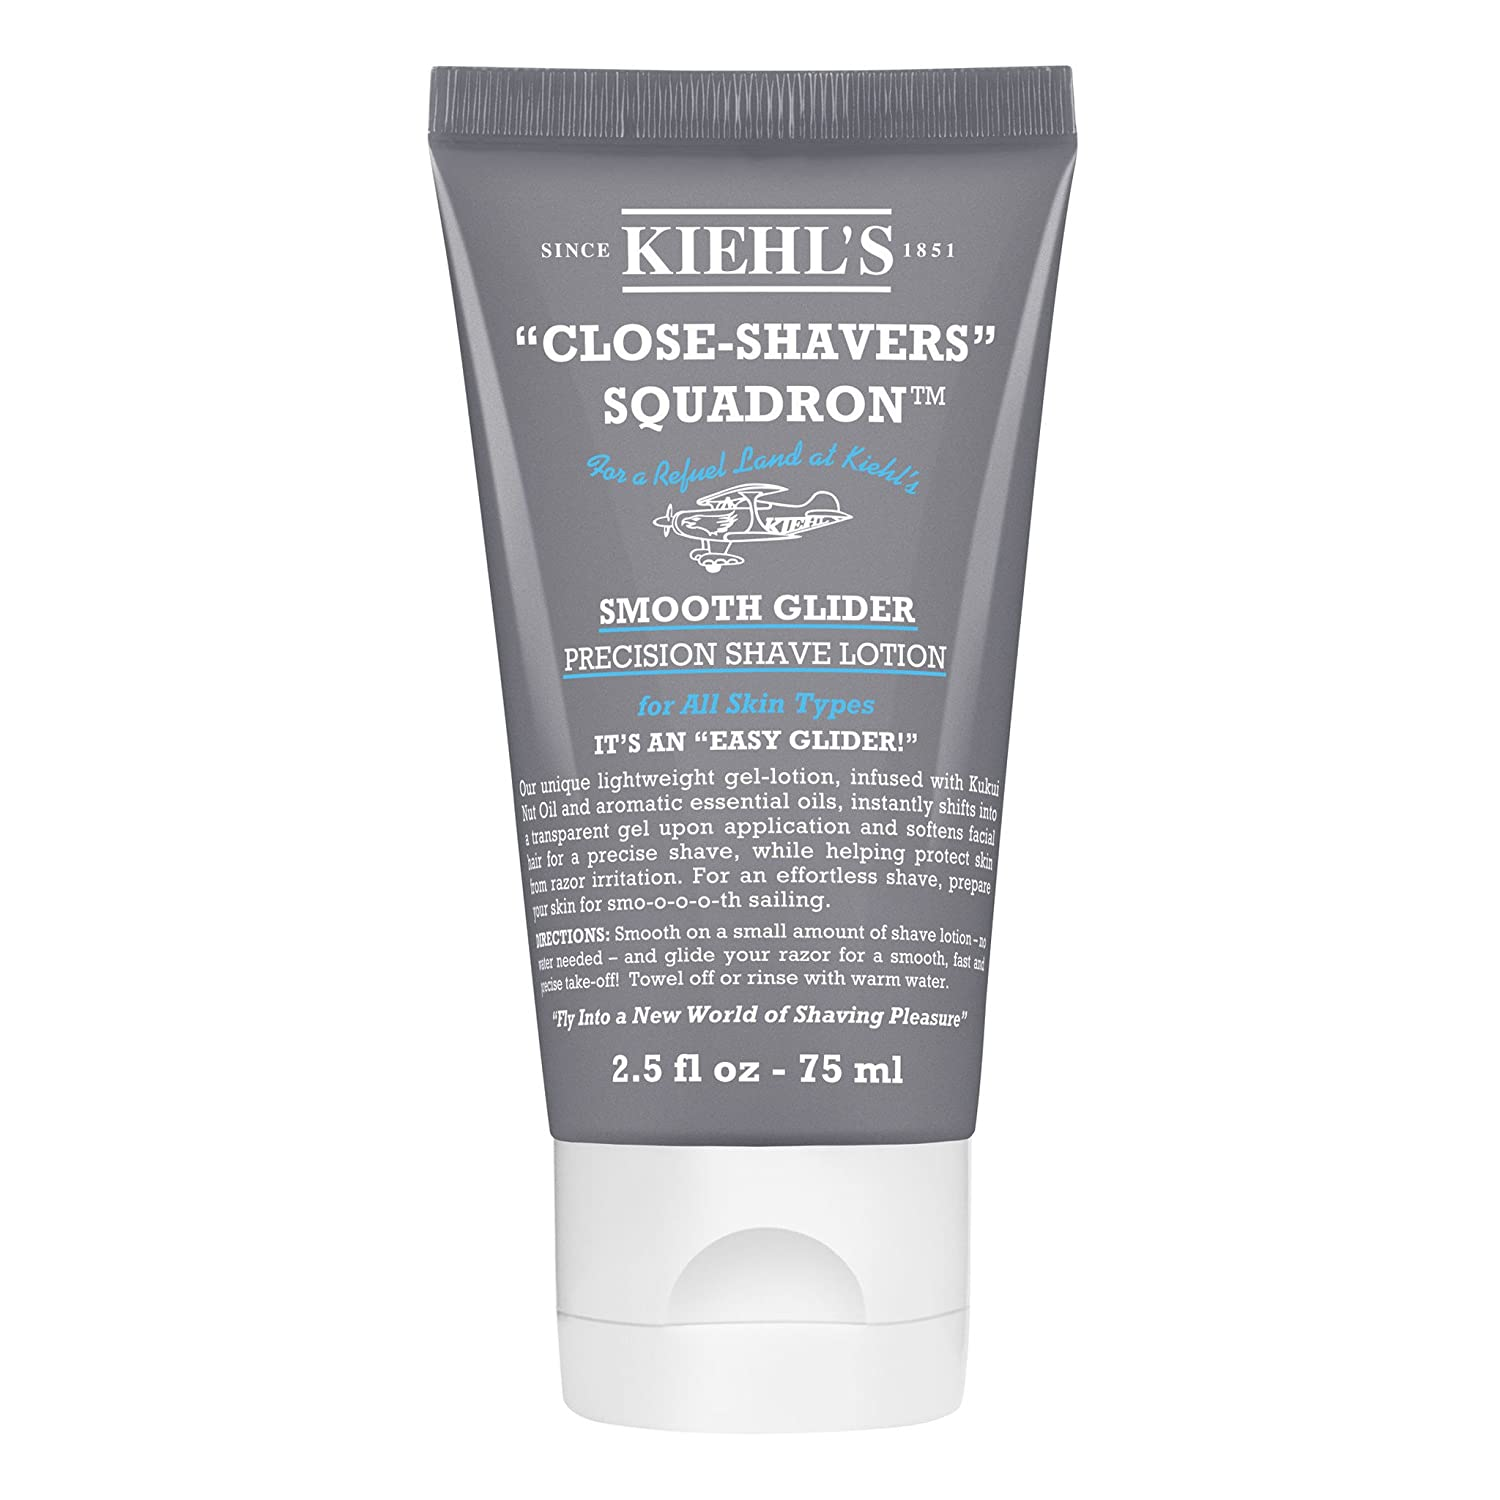 Kiehl's Smooth Glider Precision Shave Lotion 2.5oz (75ml) Kiehl' s